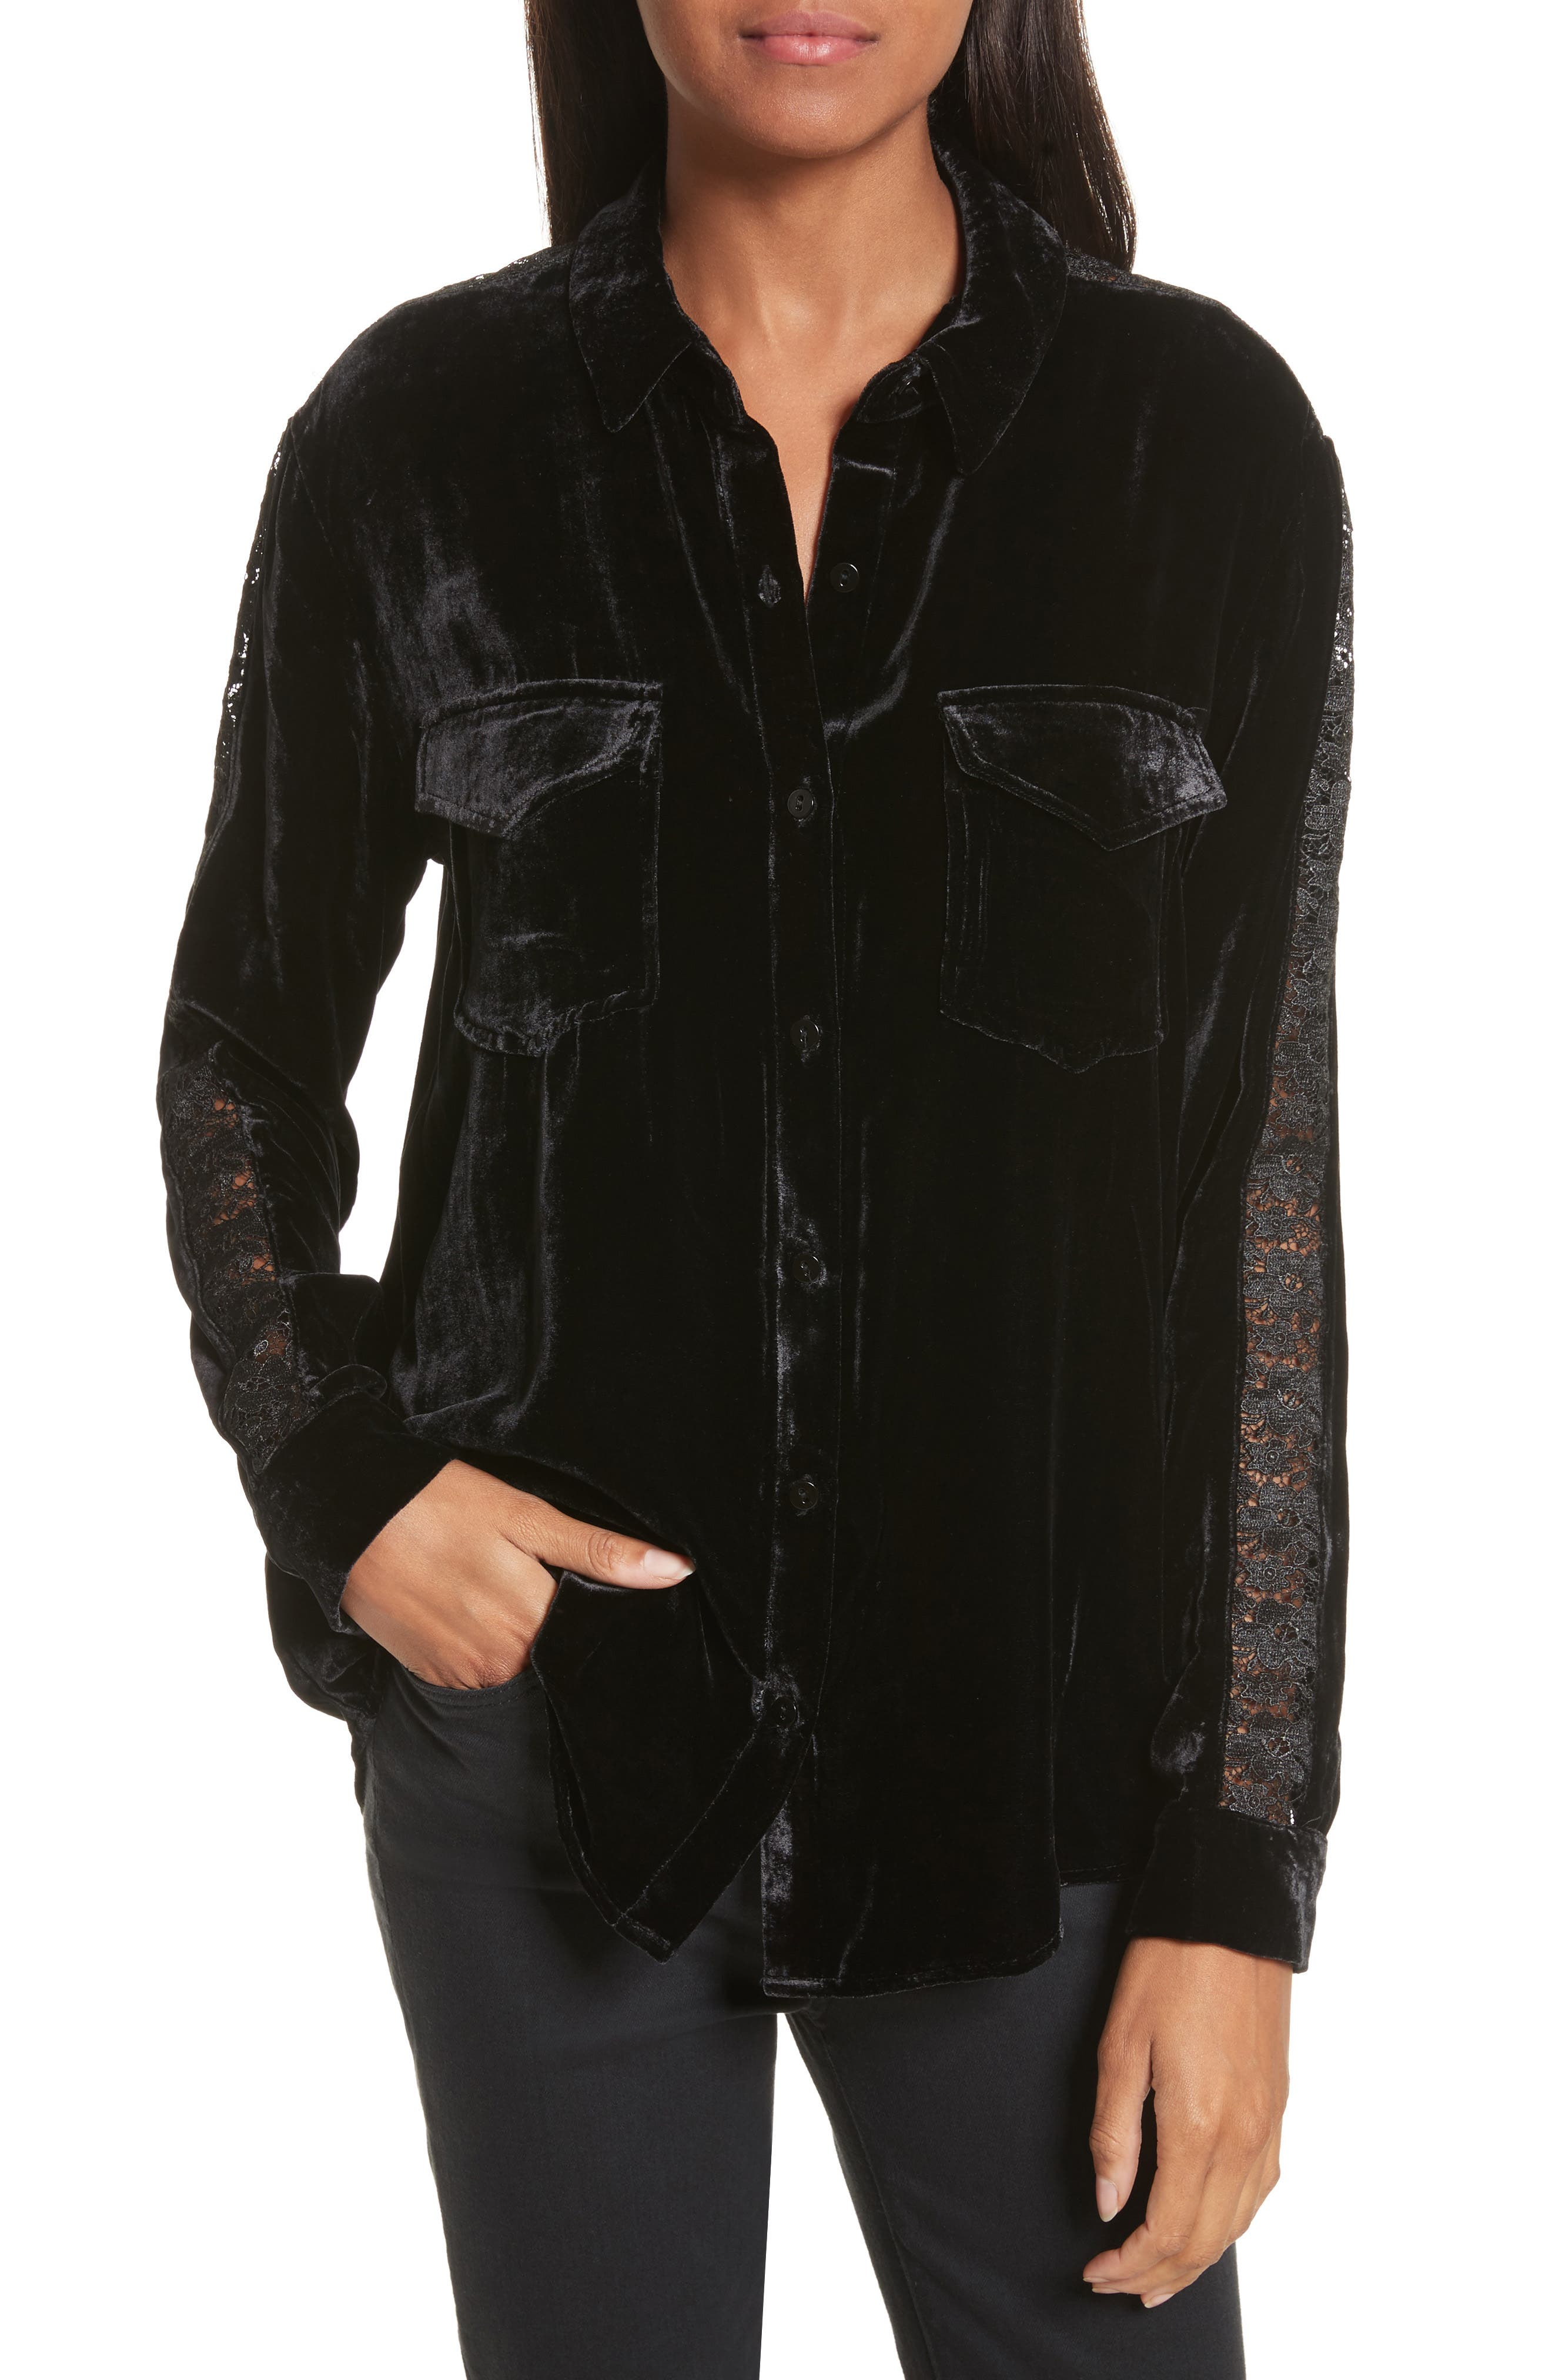 Alternate Image 1 Selected - The Kooples Lace Trim Velvet Shirt